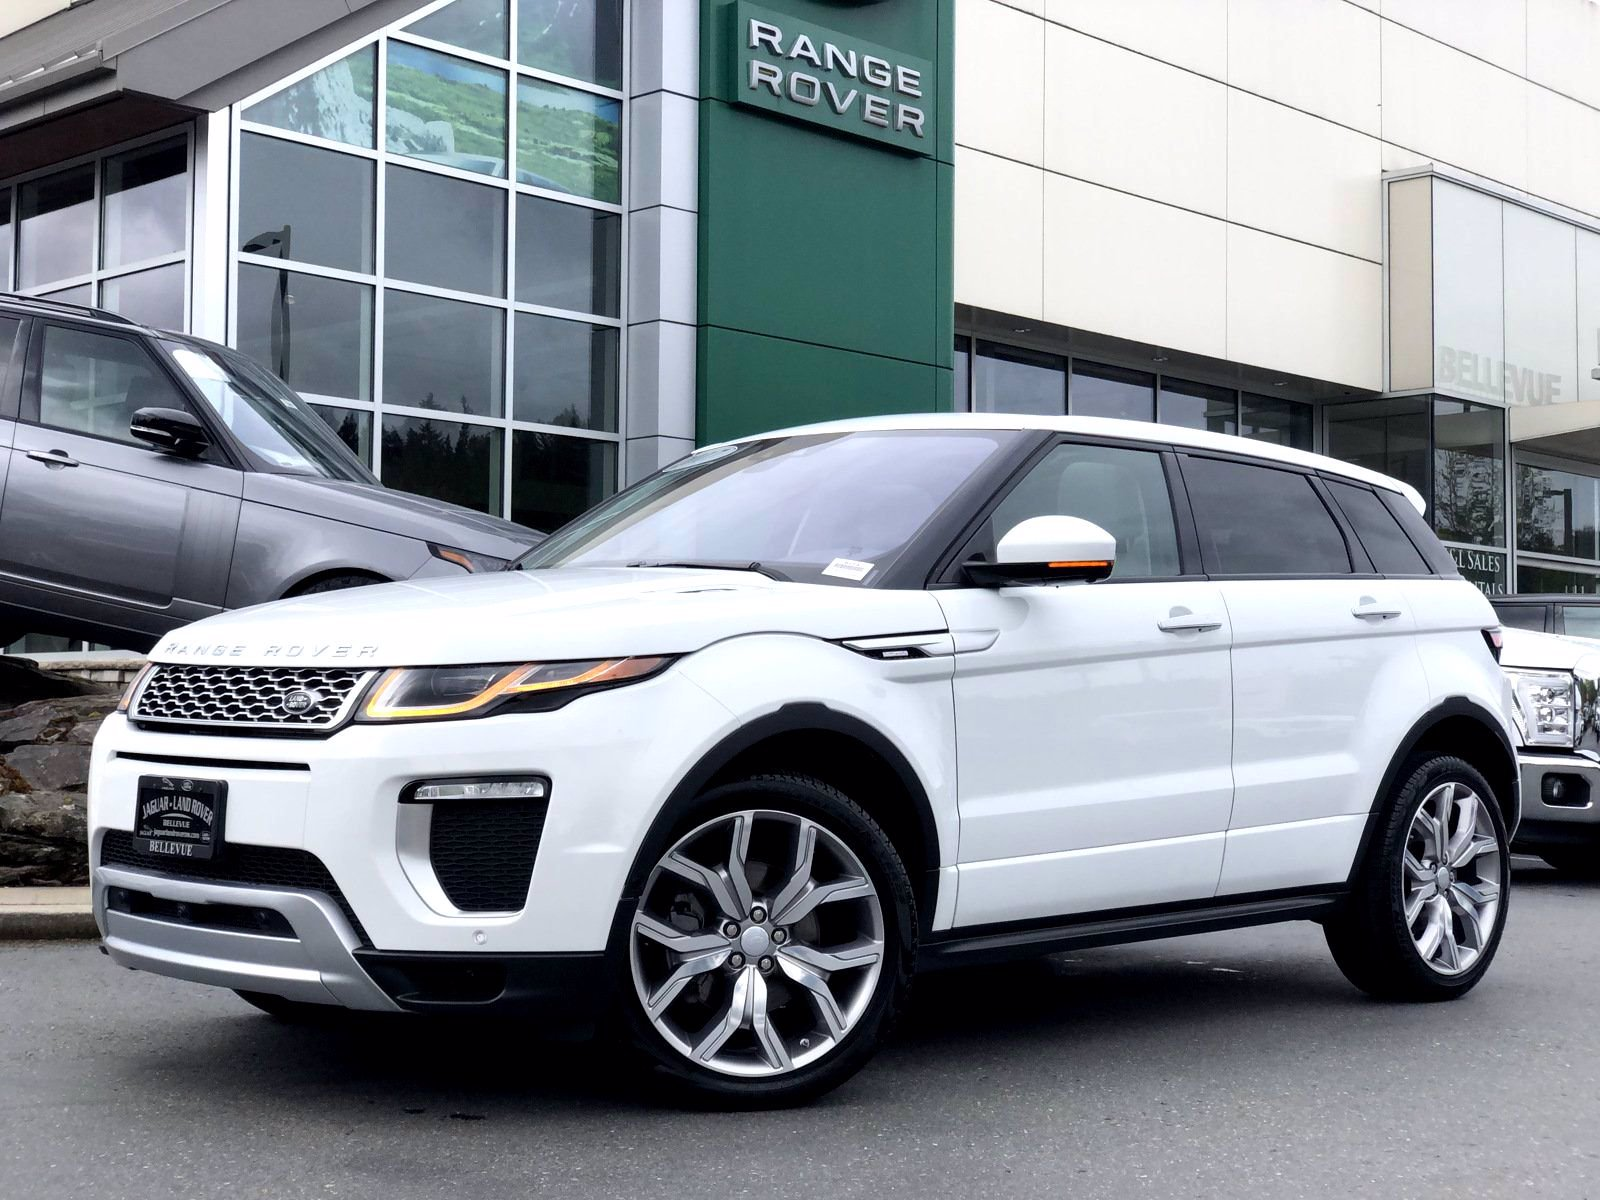 rover range evoque autobiography owned pre land 4wd navigation